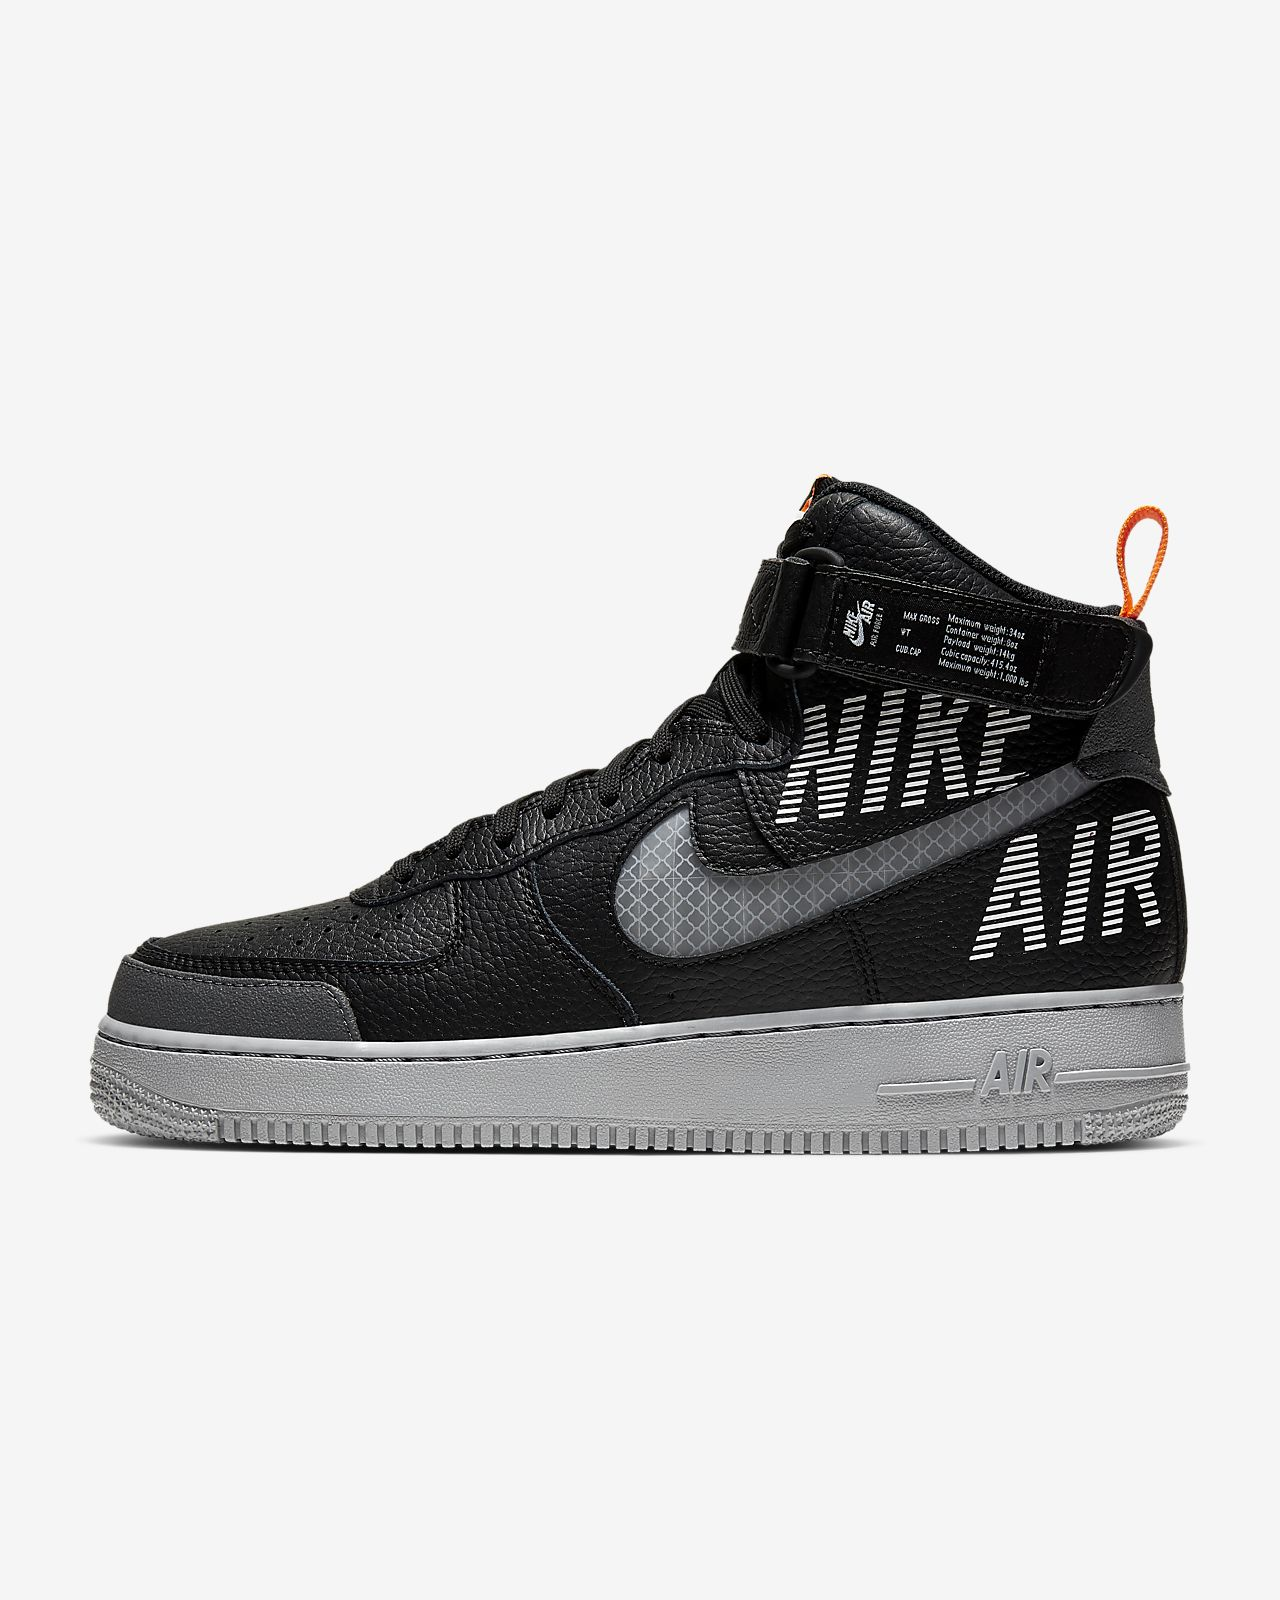 Nike Air Force 1 High '07 LV8 2 Herenschoen